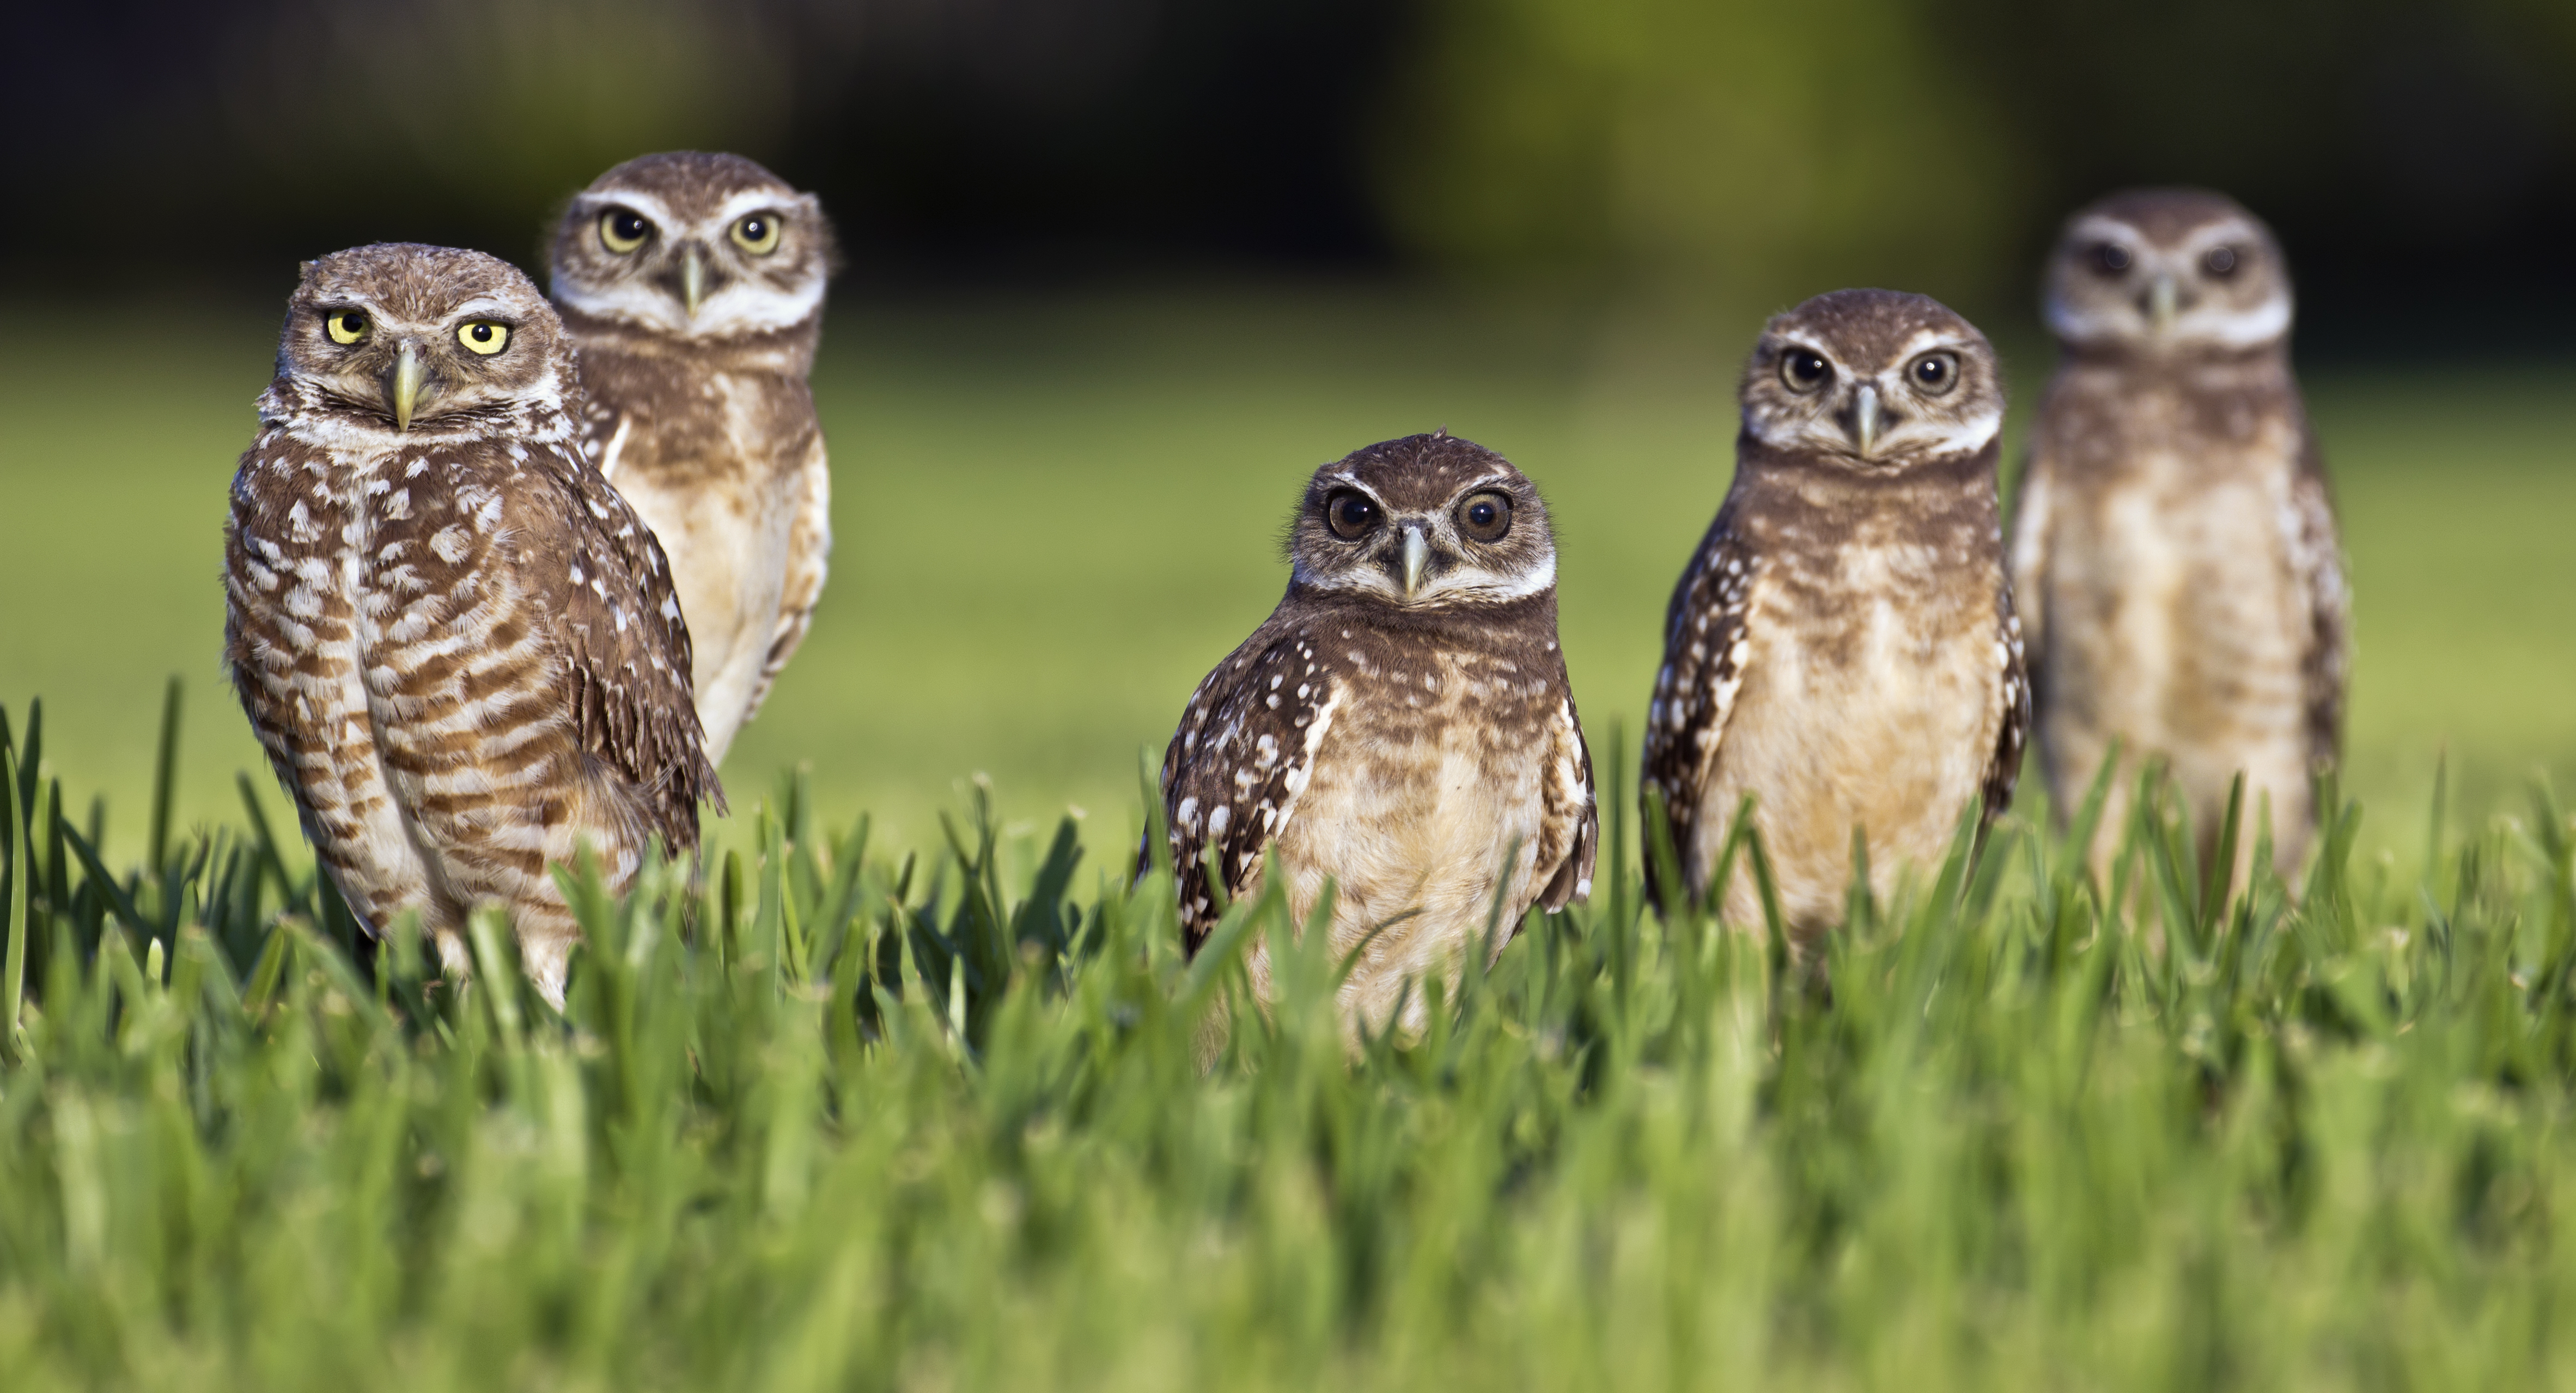 Group of burrowing owls is called a parliament photo